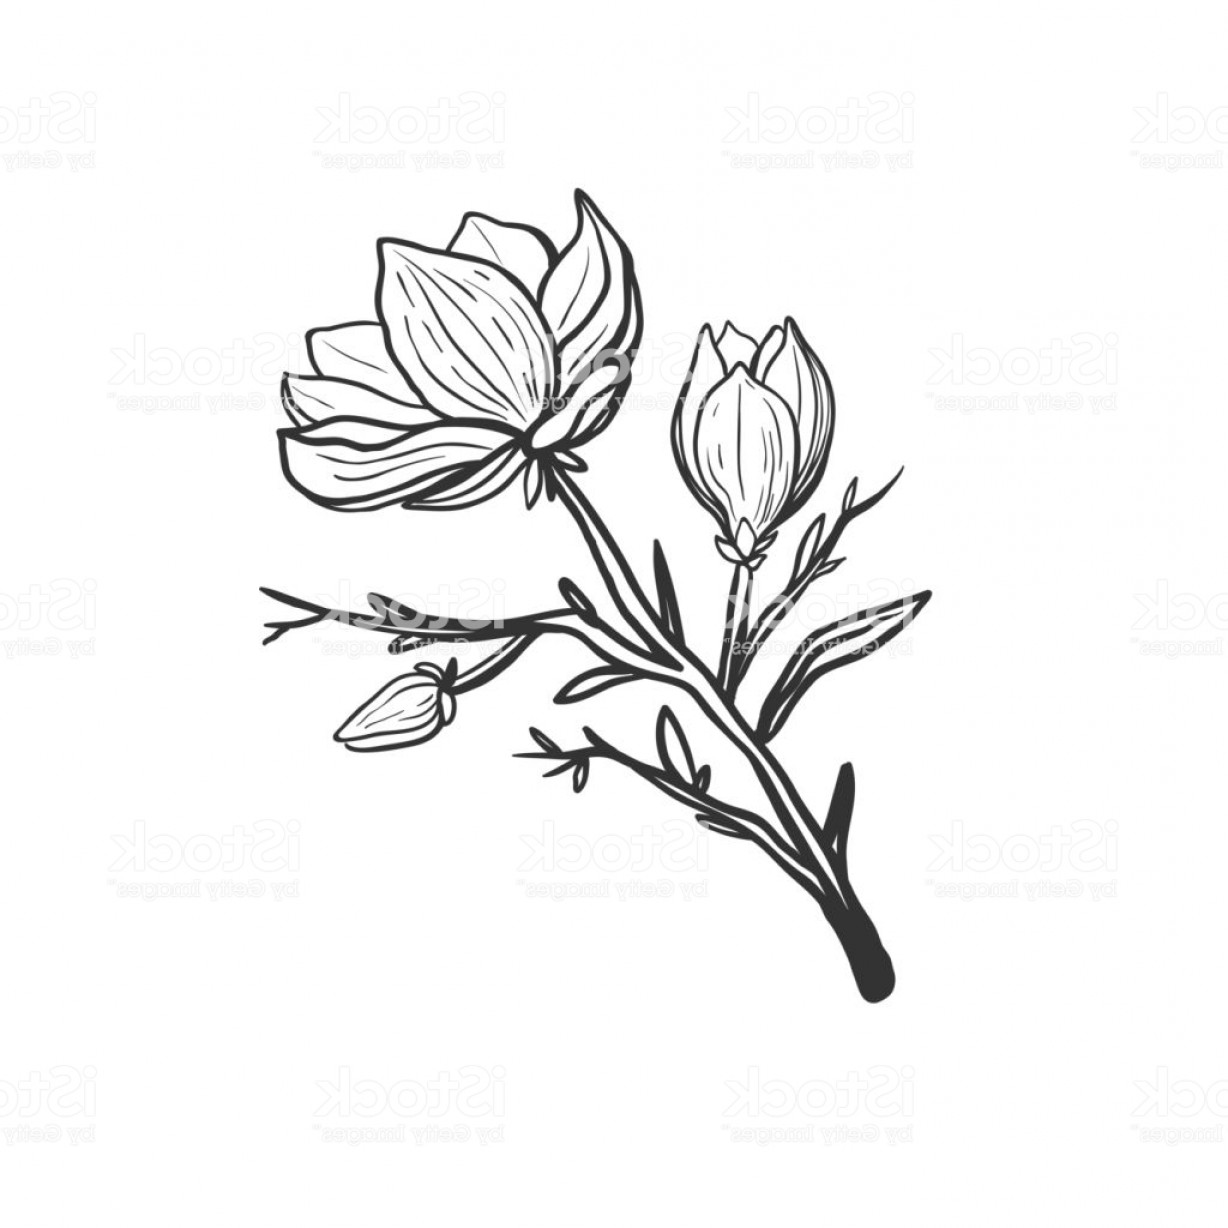 Magnolia Black And White Vector: Beautiful Magnolia Branch With Flowers Isolated On White Black And White Vector Gm